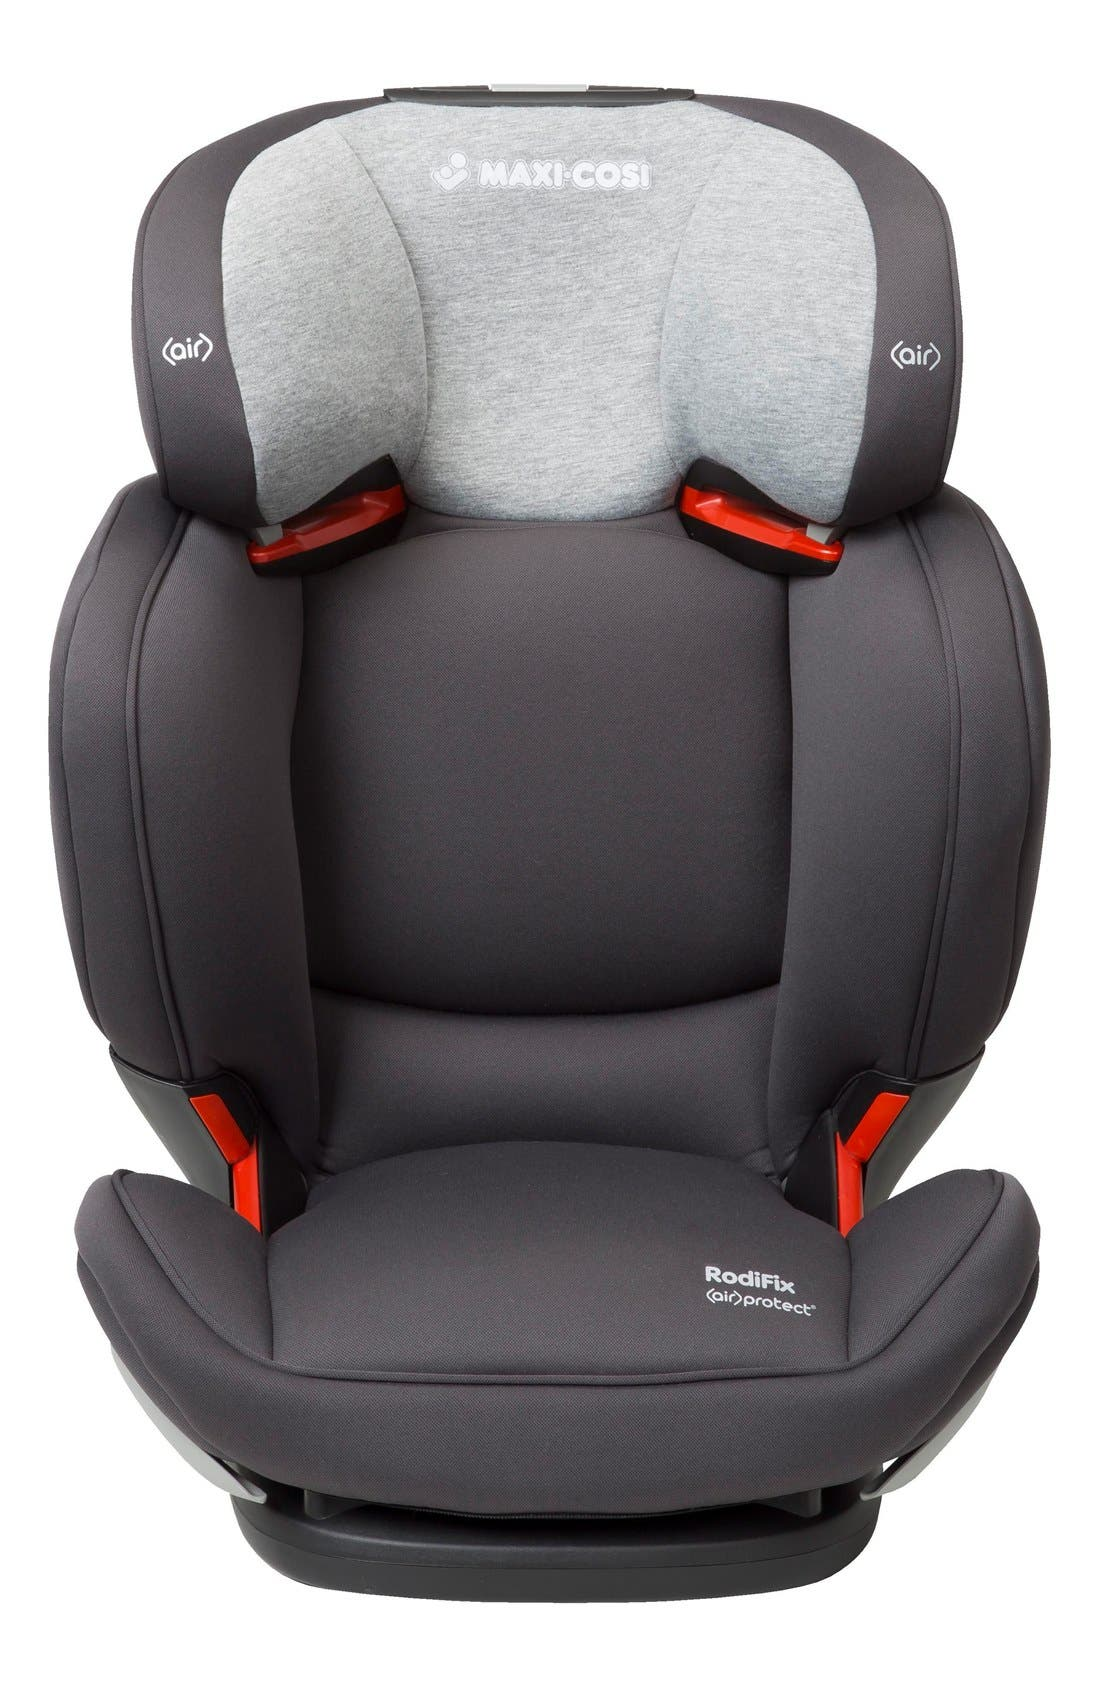 RodiFix Booster Car Seat,                             Alternate thumbnail 10, color,